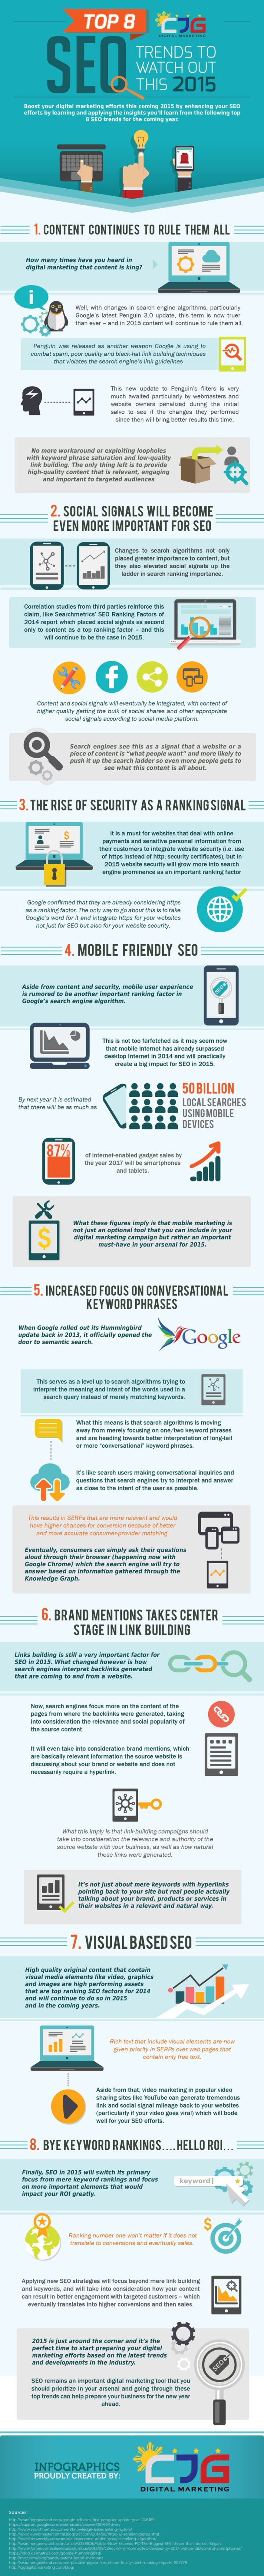 SEO Highlights In 2015